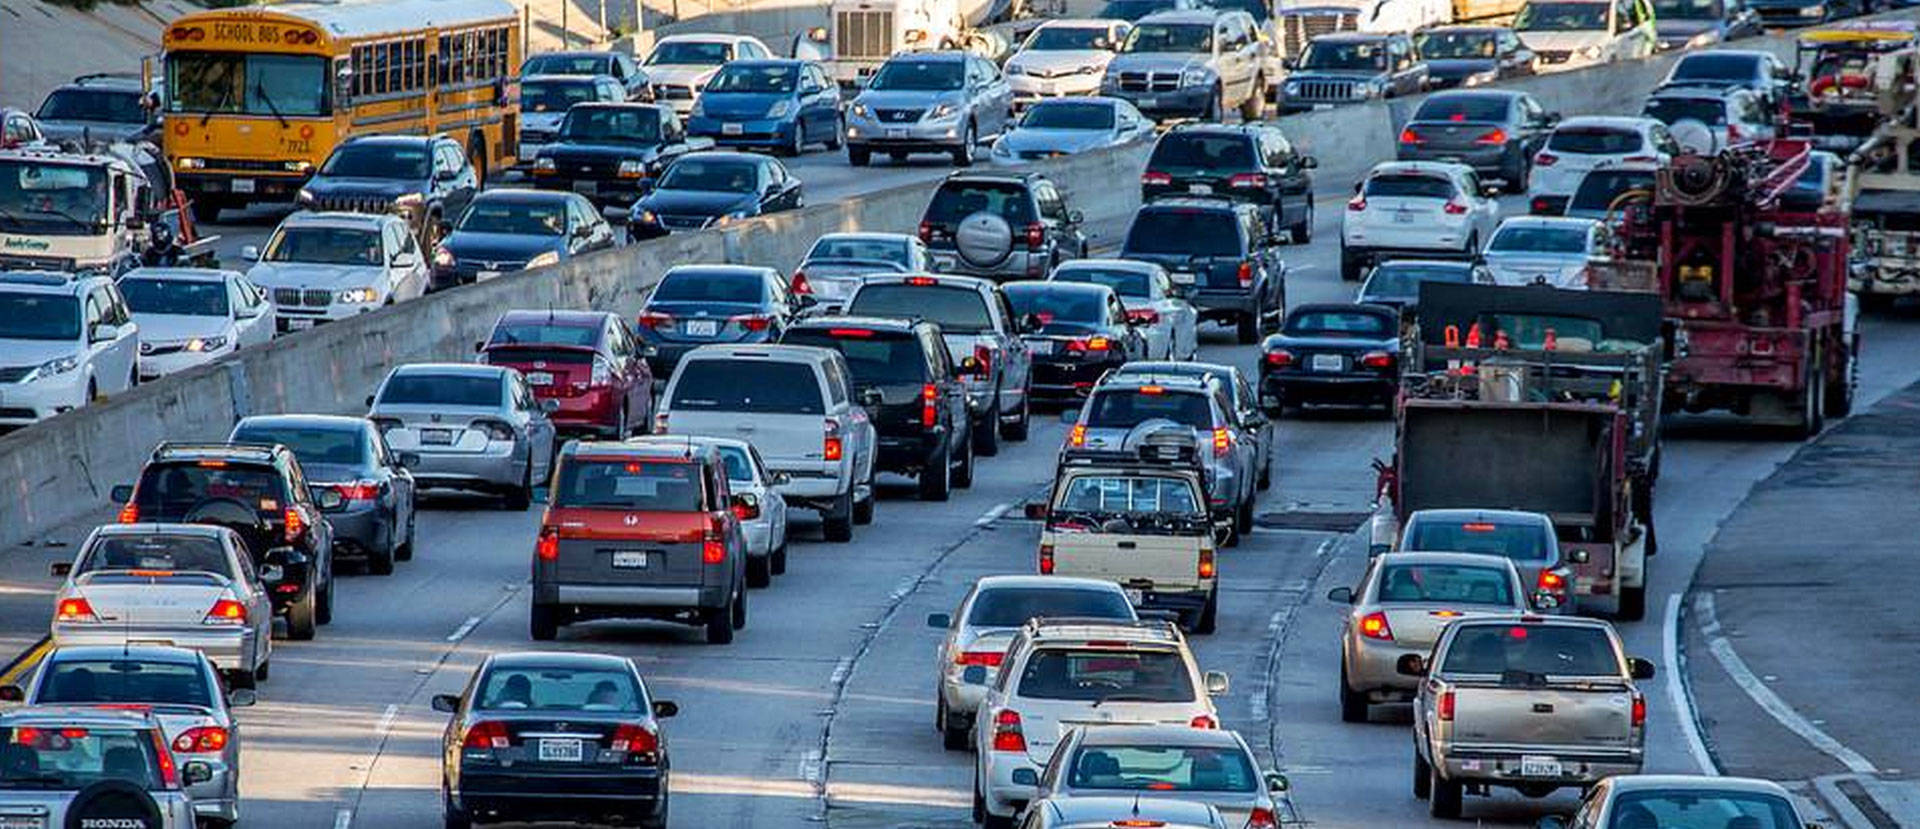 The traffic clogging California's roadways spews streams of greenhouse gases into the air. Eric Demarcq/Creative Commons